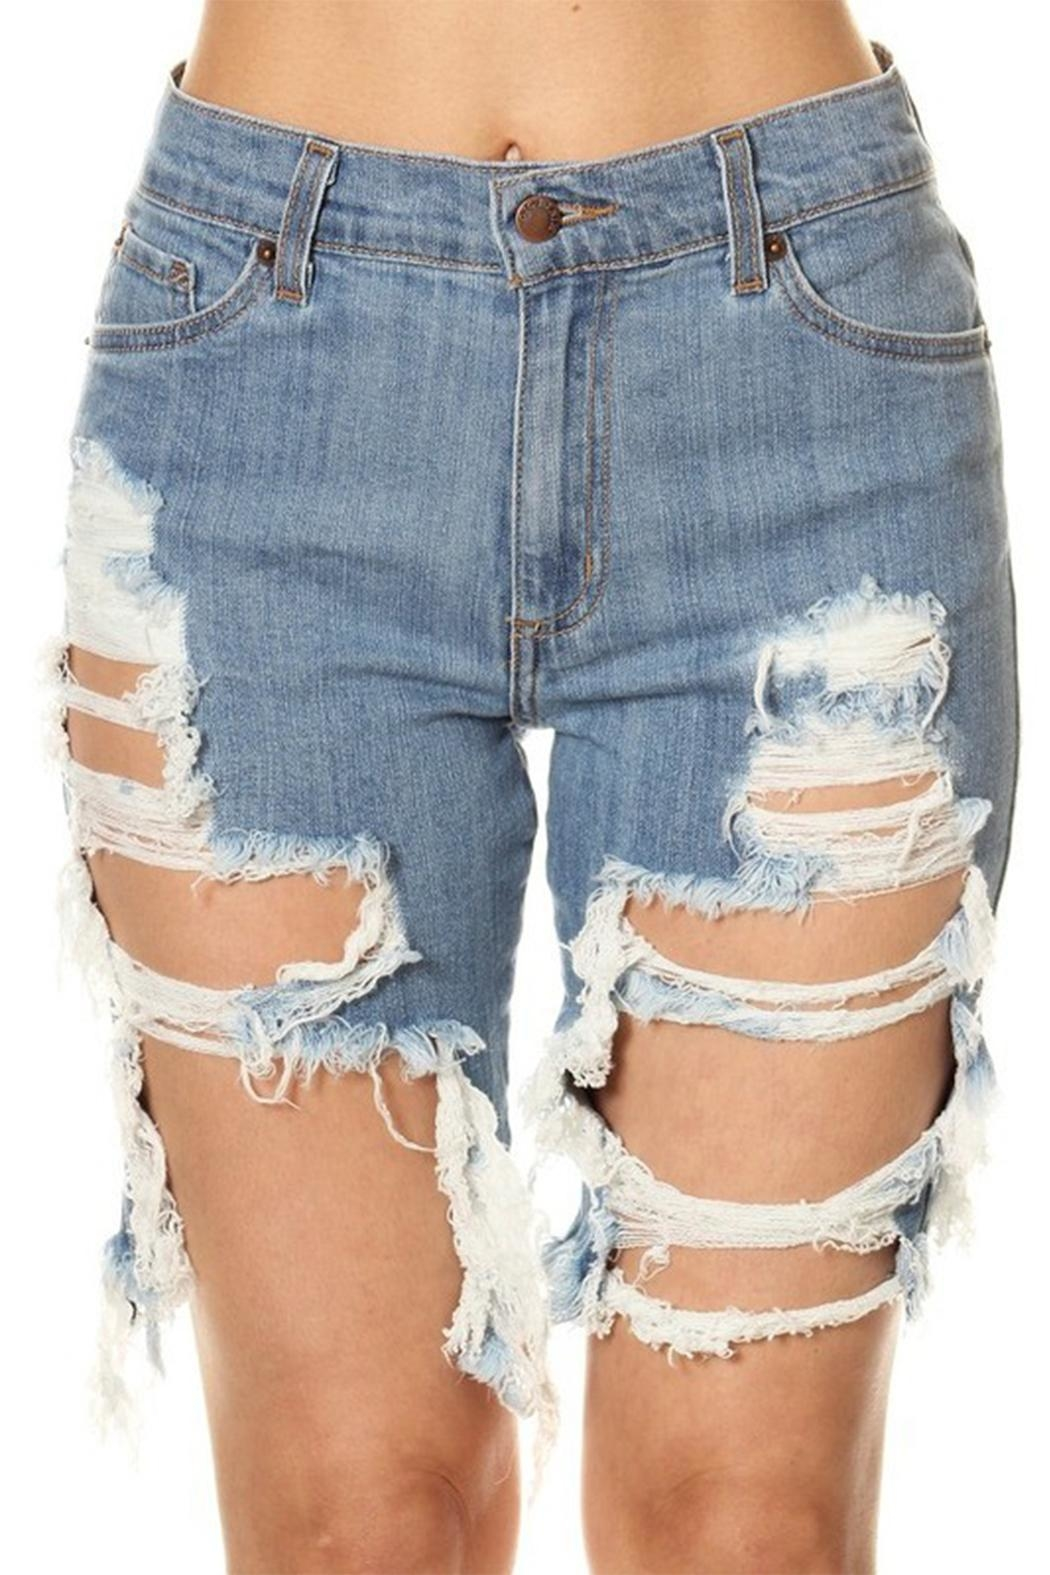 GJG Denim Daisy Bermuda Shorts - Main Image